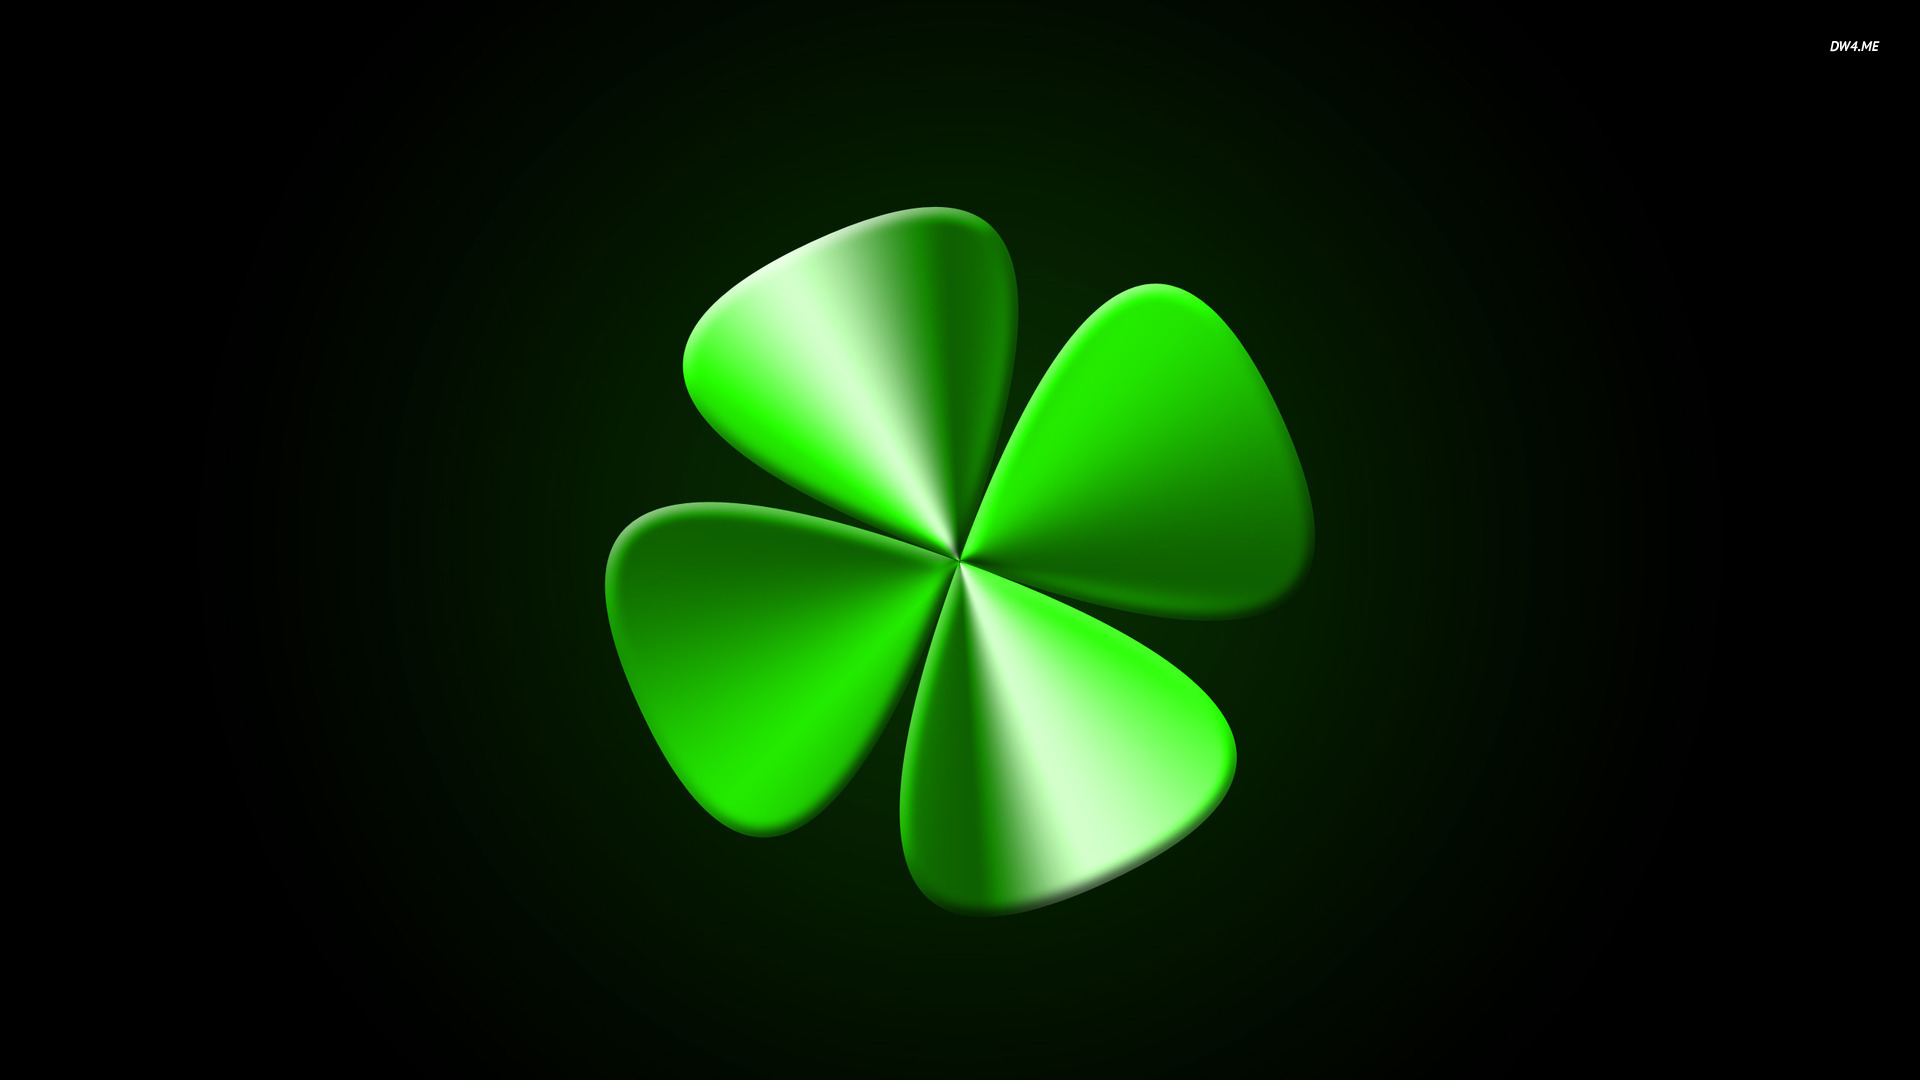 Four leaf clover wallpaper   Digital Art wallpapers   509 1920x1080